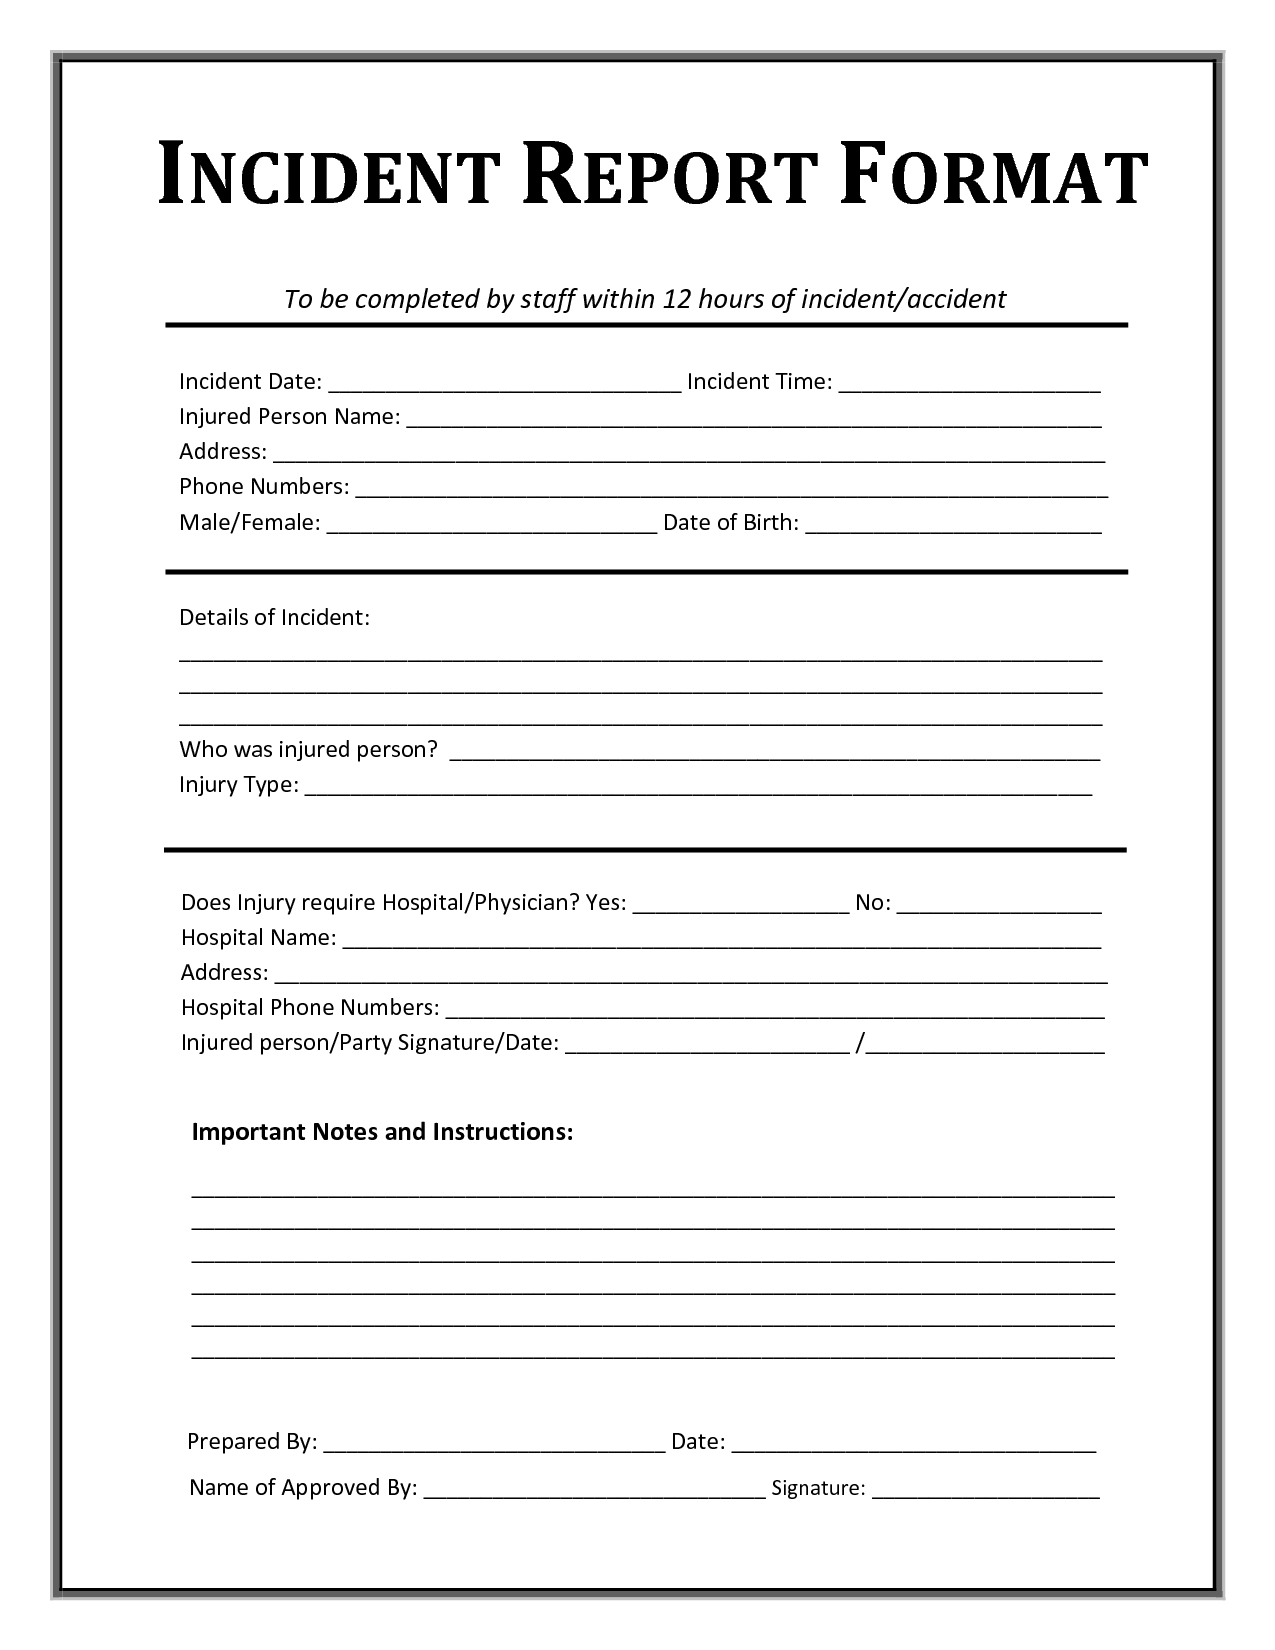 Incident Report Form Template Microsoft Excel In